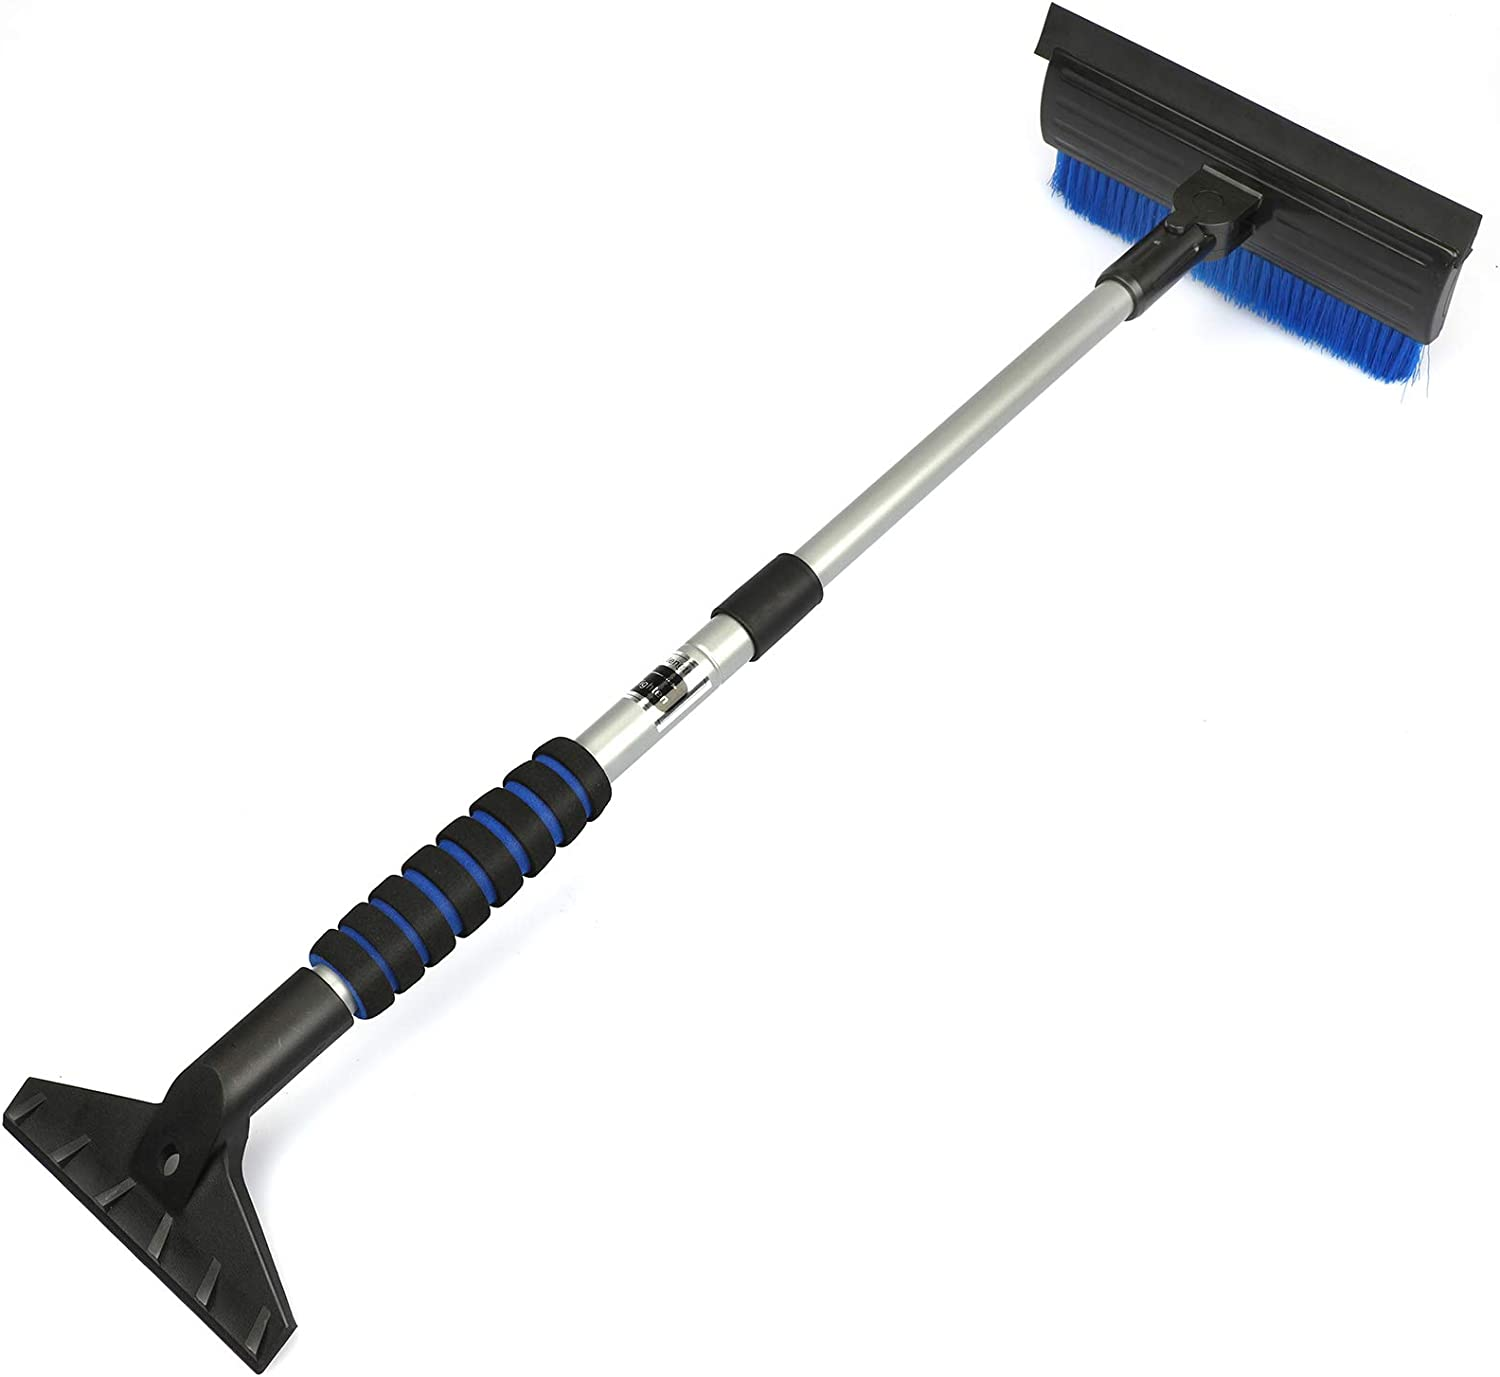 Extendable Auto Snow Removal Broom with Ice Scraper Blue Pivoting Head for Cars Trucks SUVs Foam Grip Car Snow Brush with Squeegee